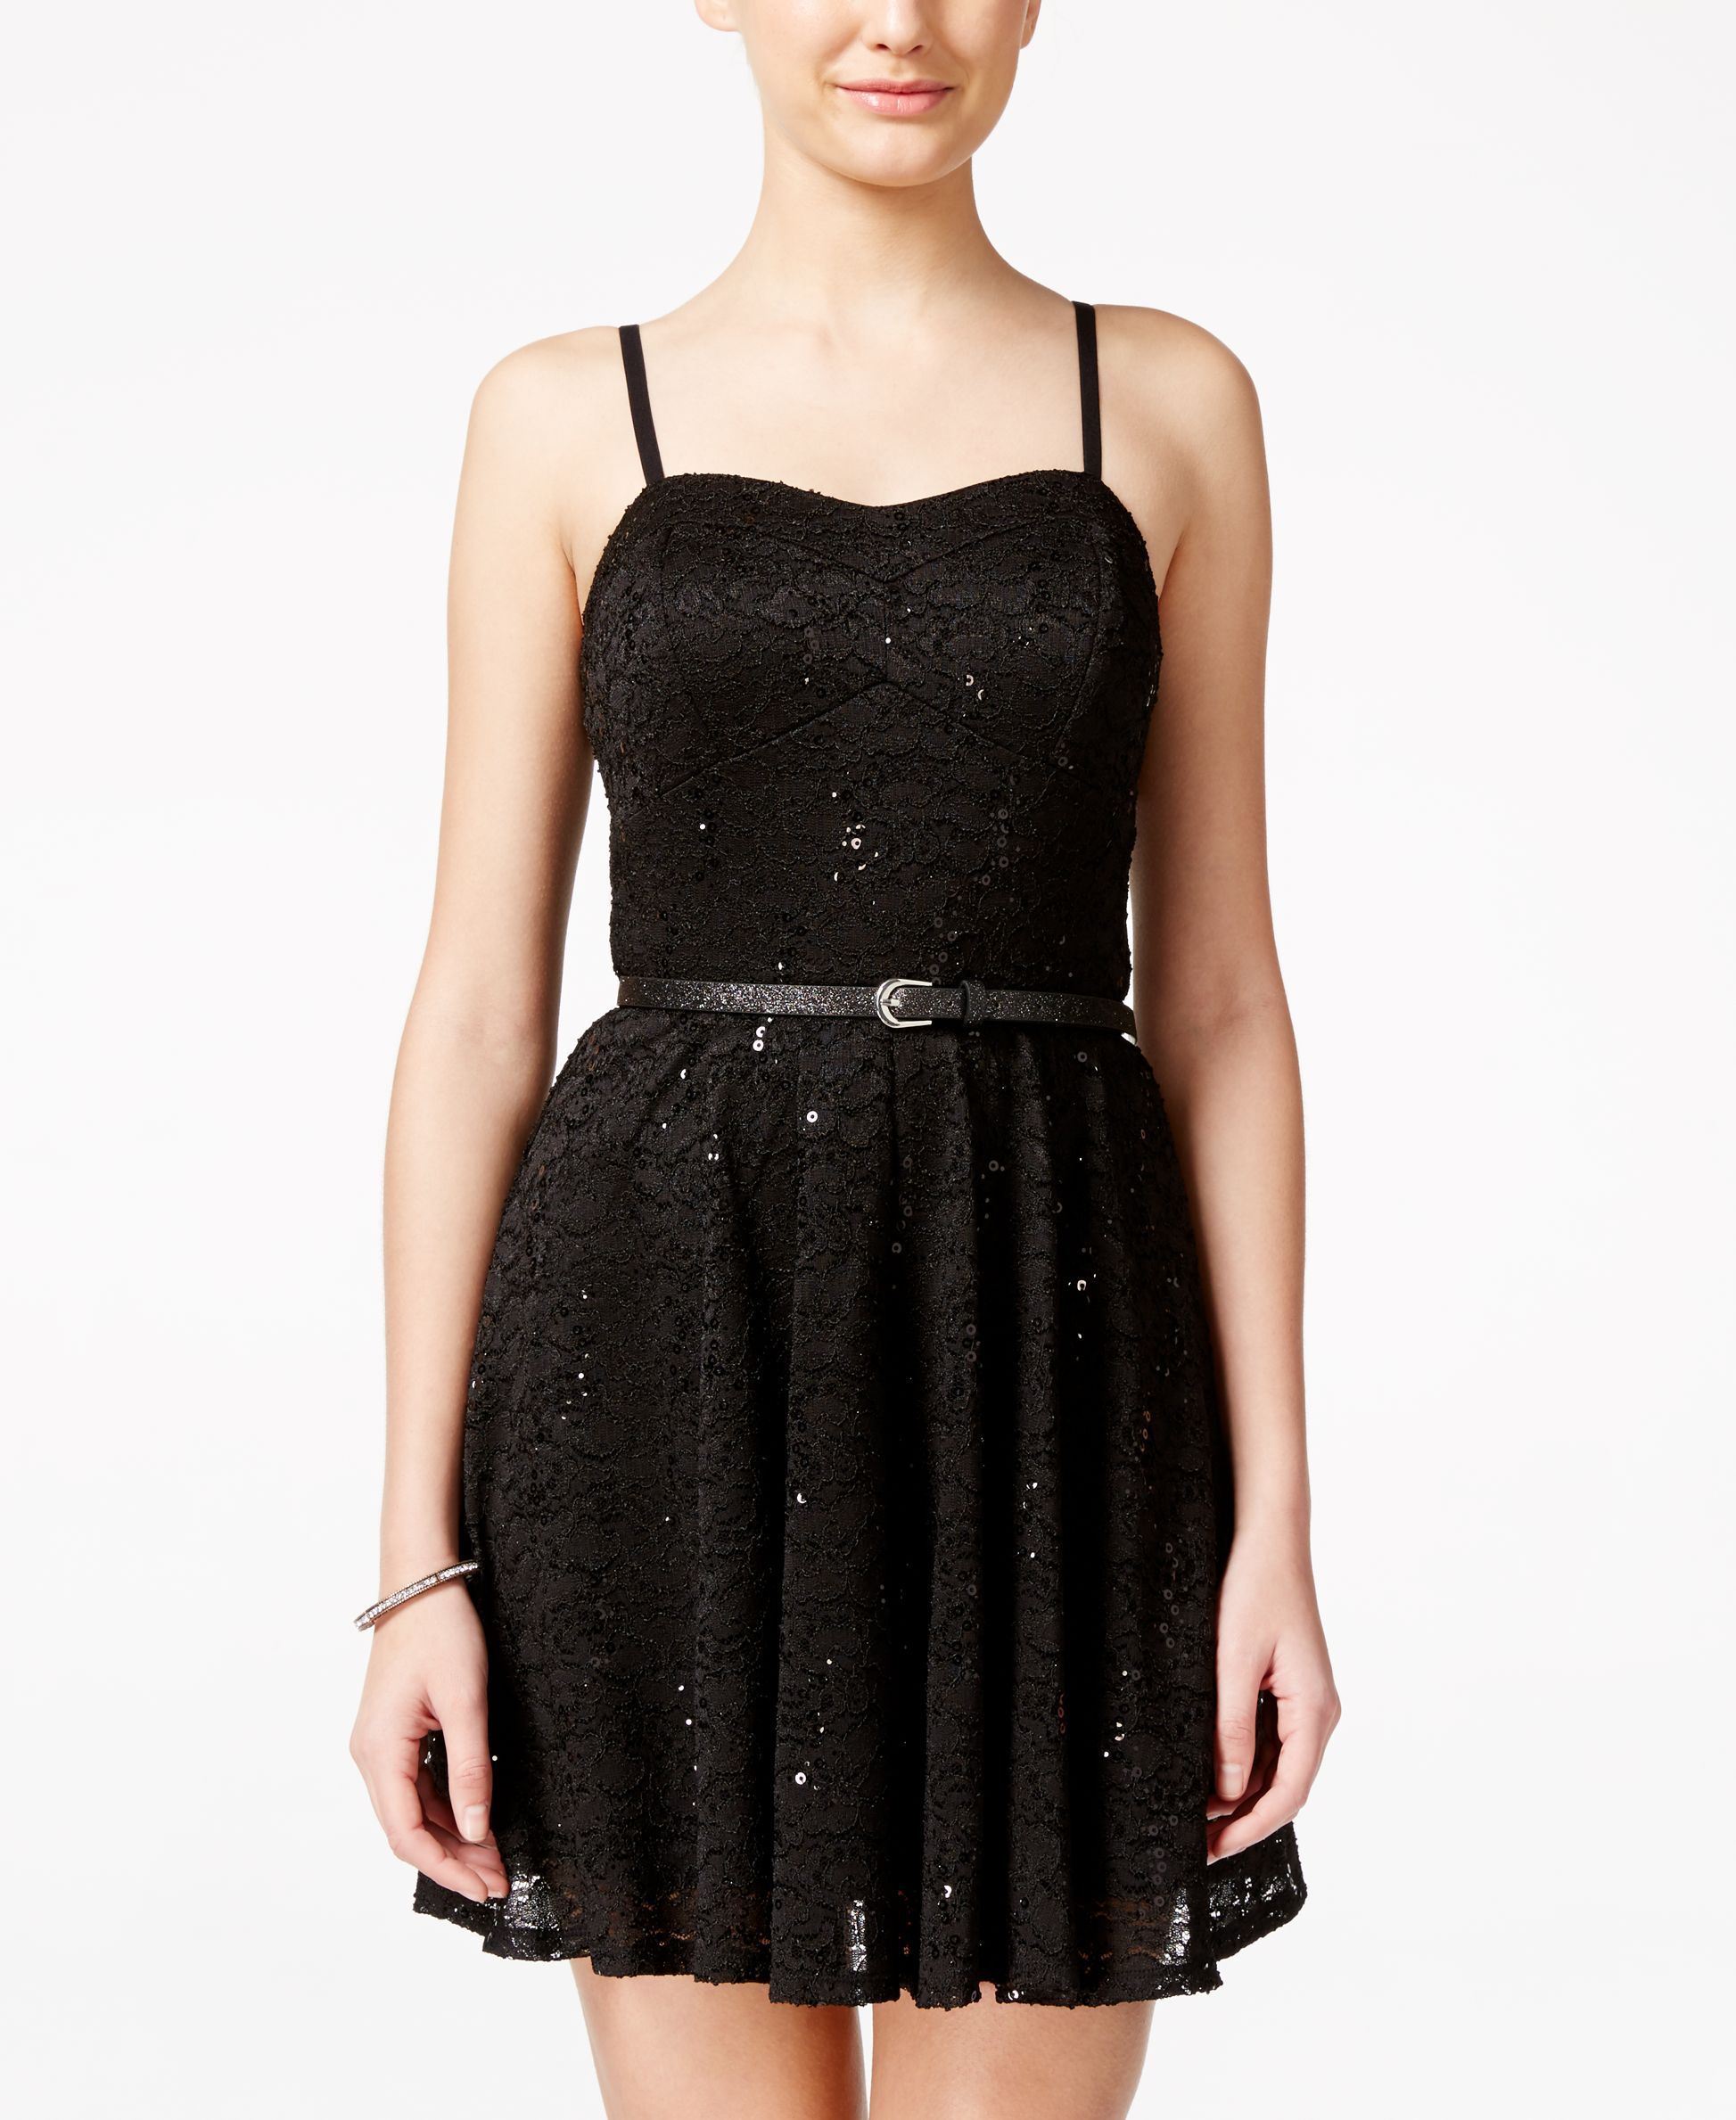 As u wish juniorsu sequin lace fitandflare party dress with belt